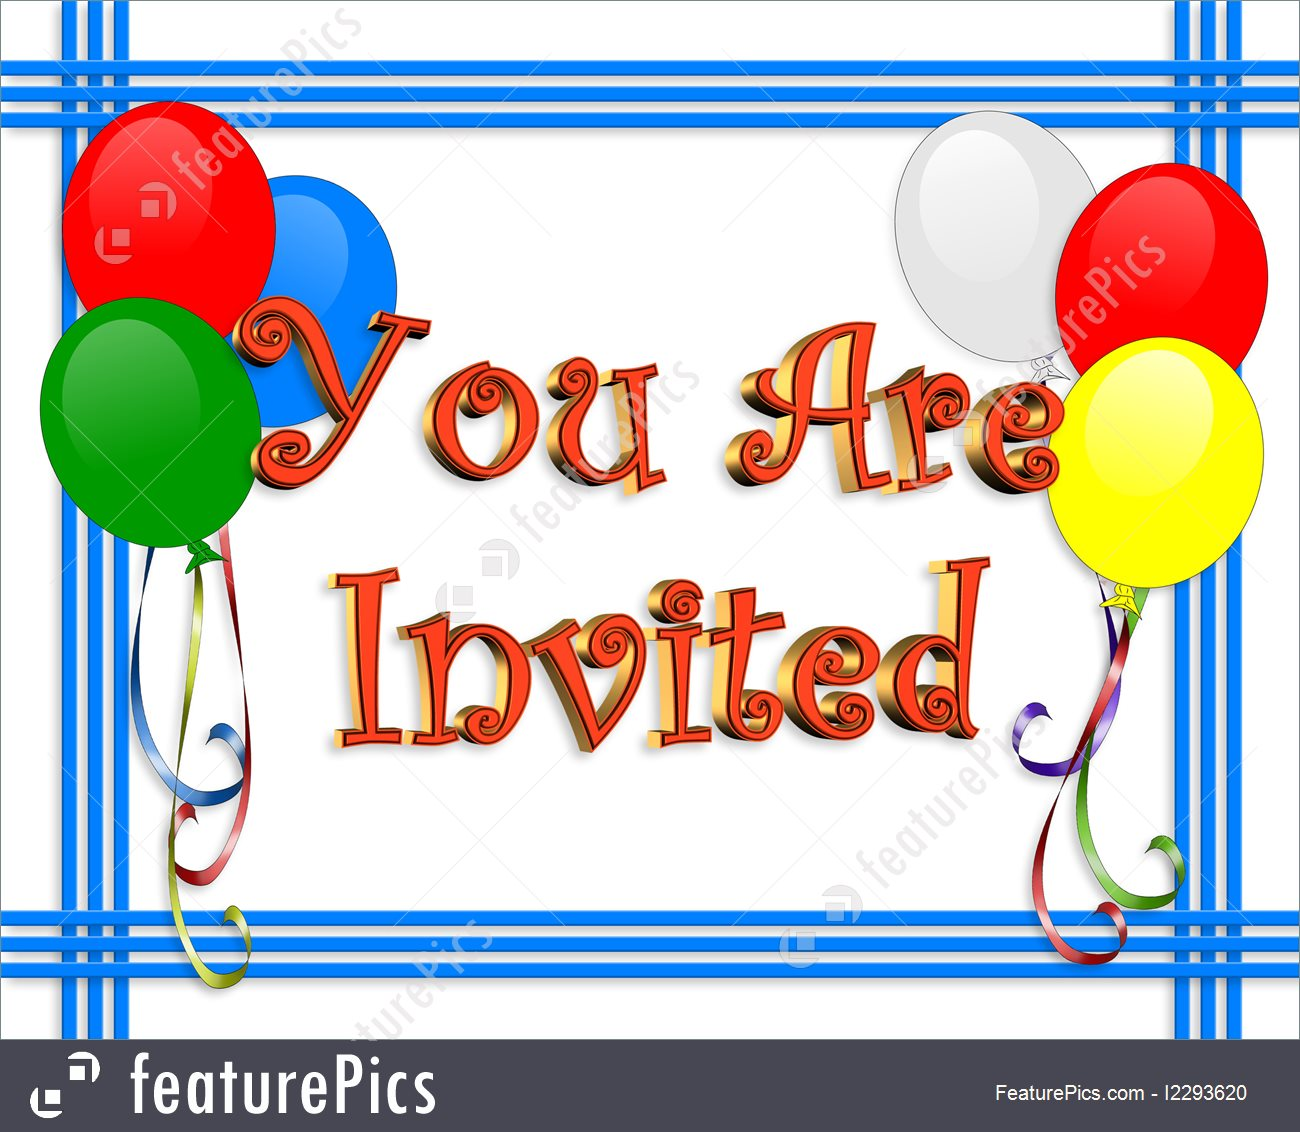 Birthday Party Invitation Balloons Border Illustration.